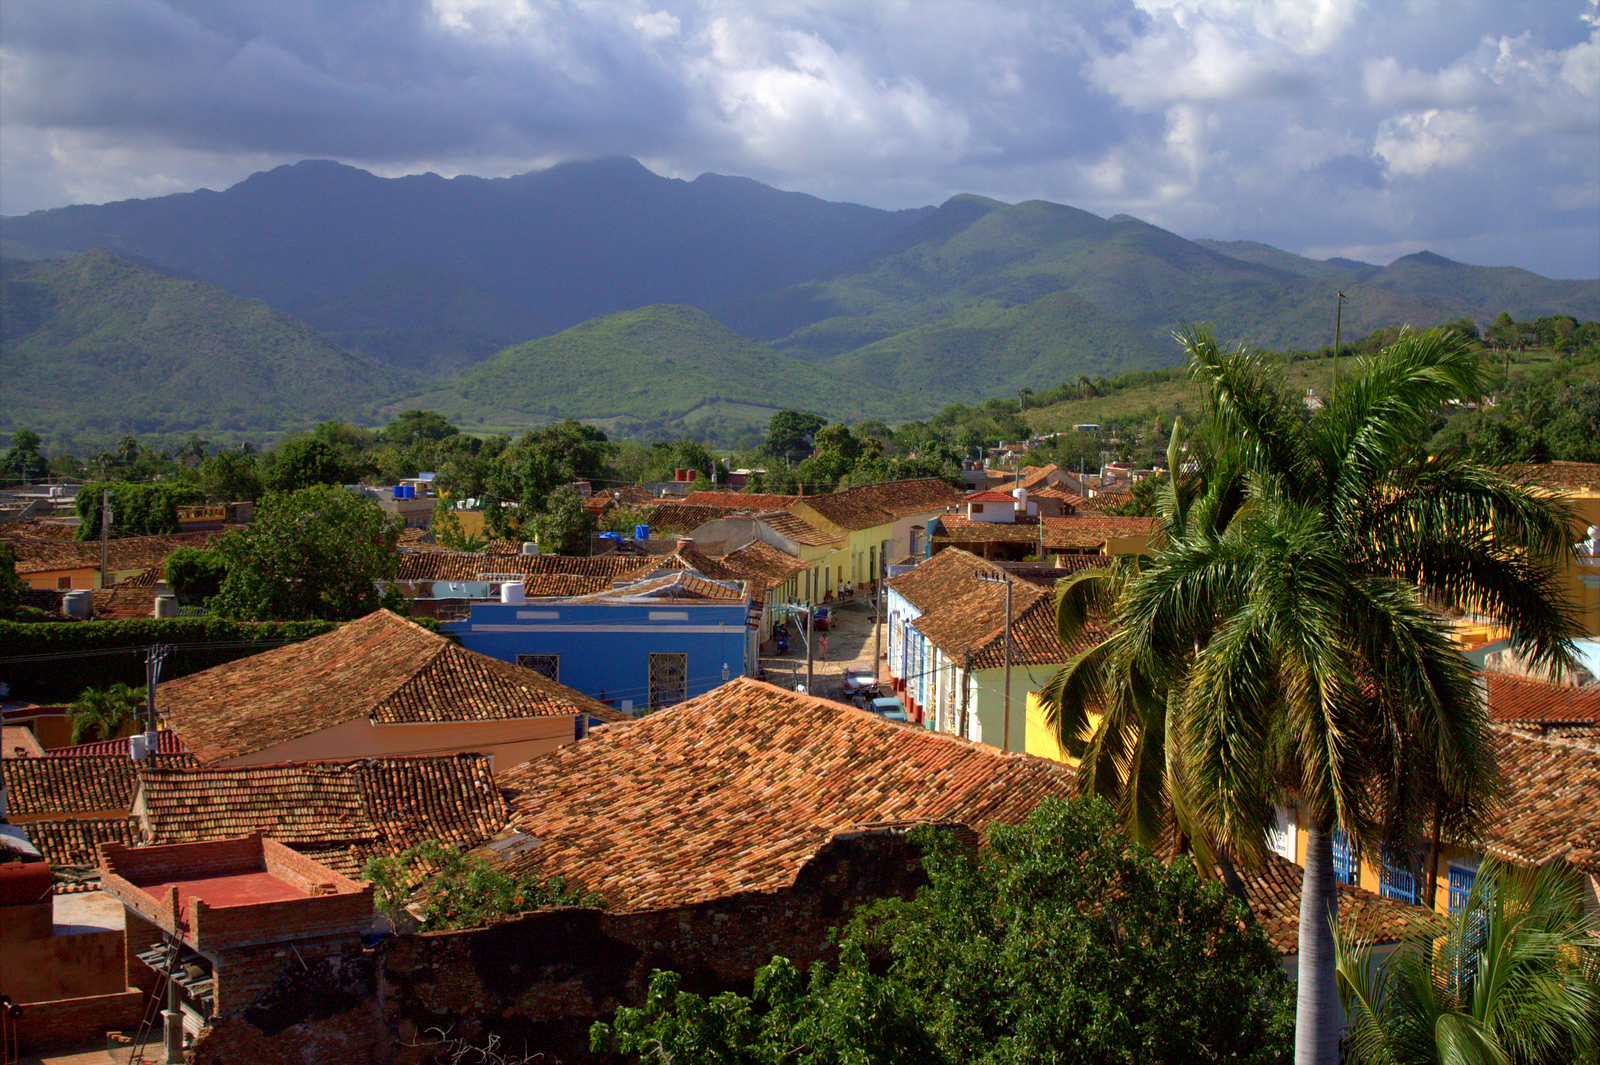 Things to do in Trinidad, Cuba